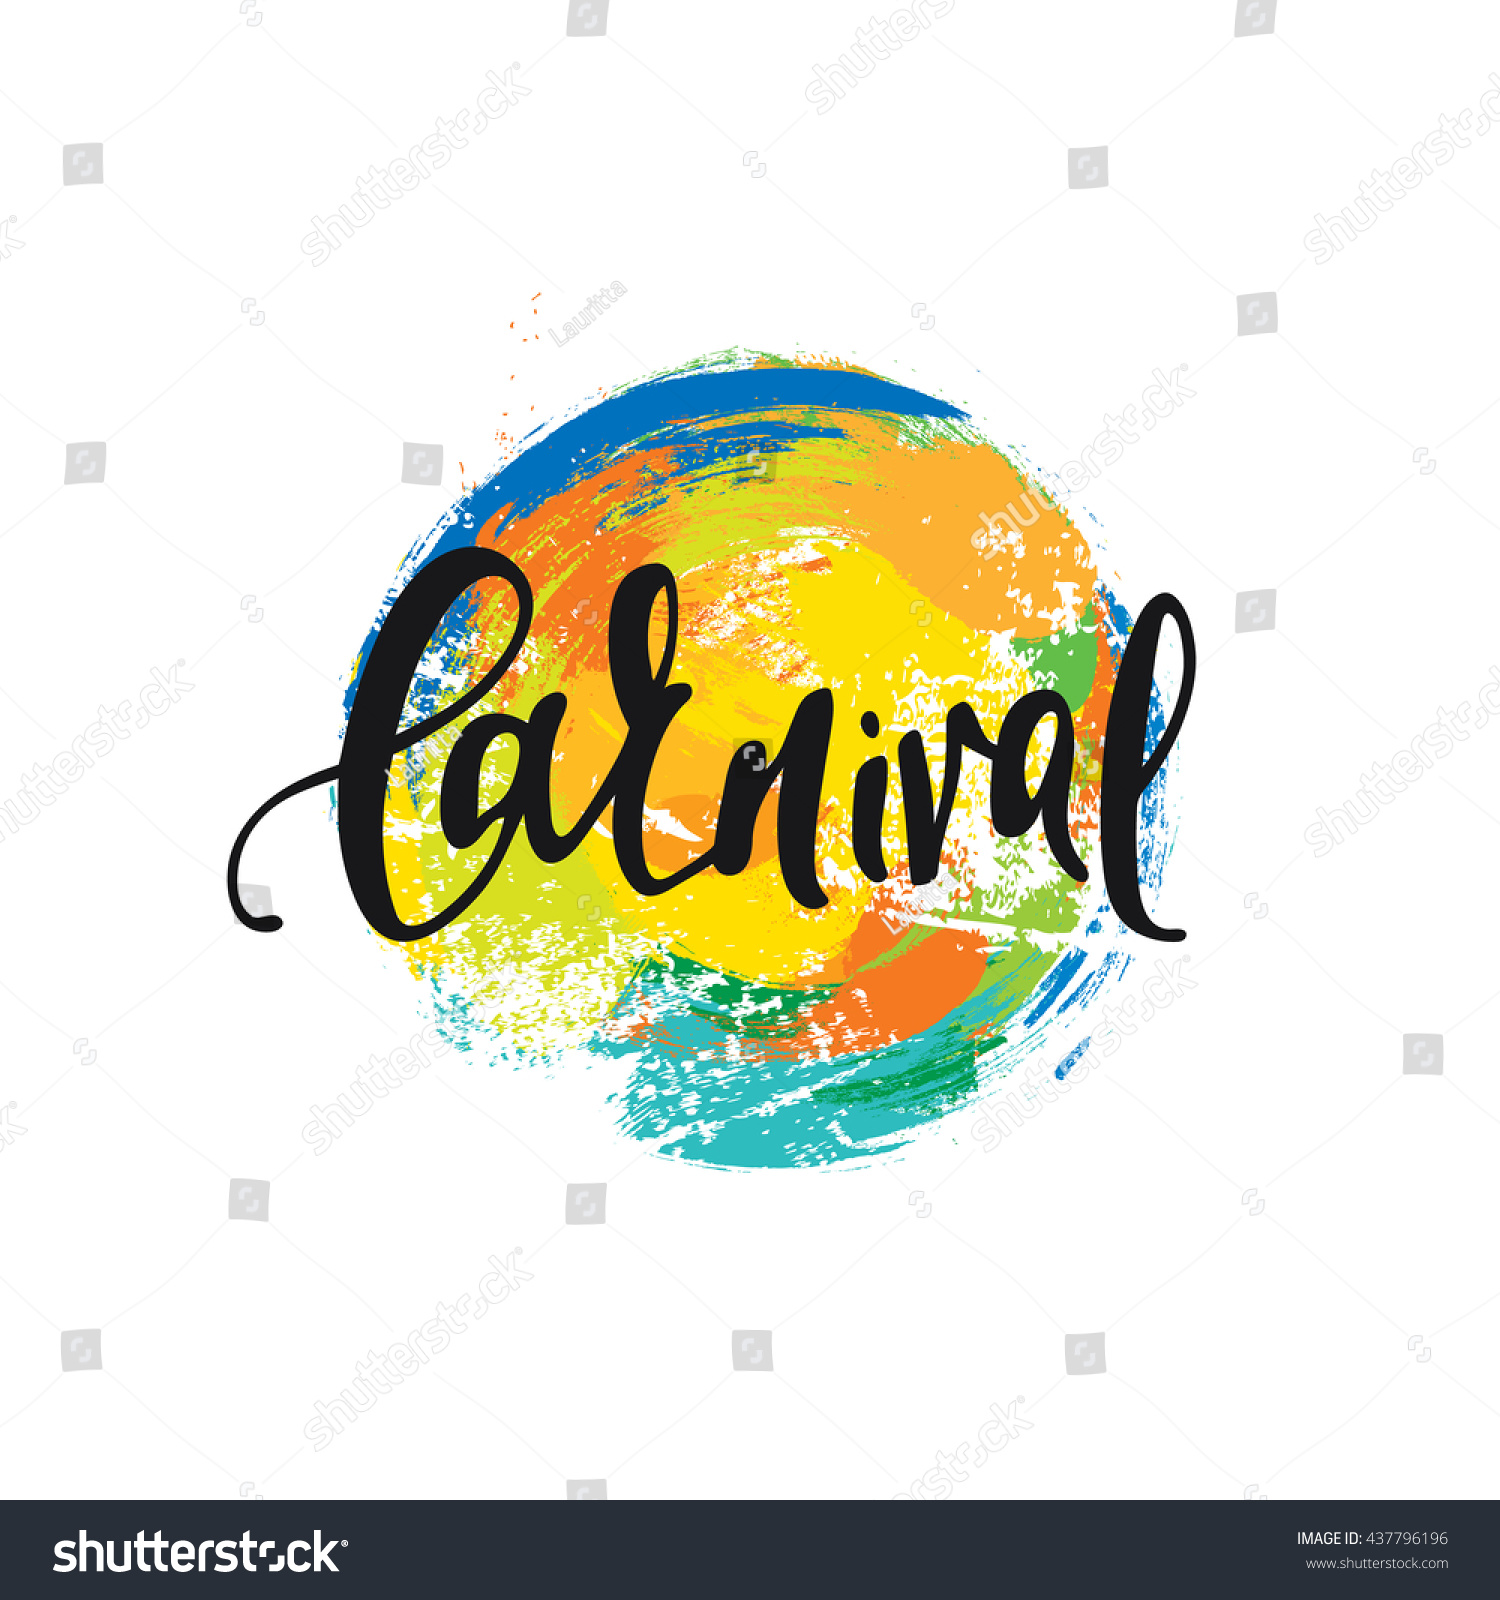 Handmade watercolor brazil flag brasil stock photos freeimages com - Inscription Carnival Background Colors Of The Brazilian Flag Calligraphy Handmade Greeting Cards Posters